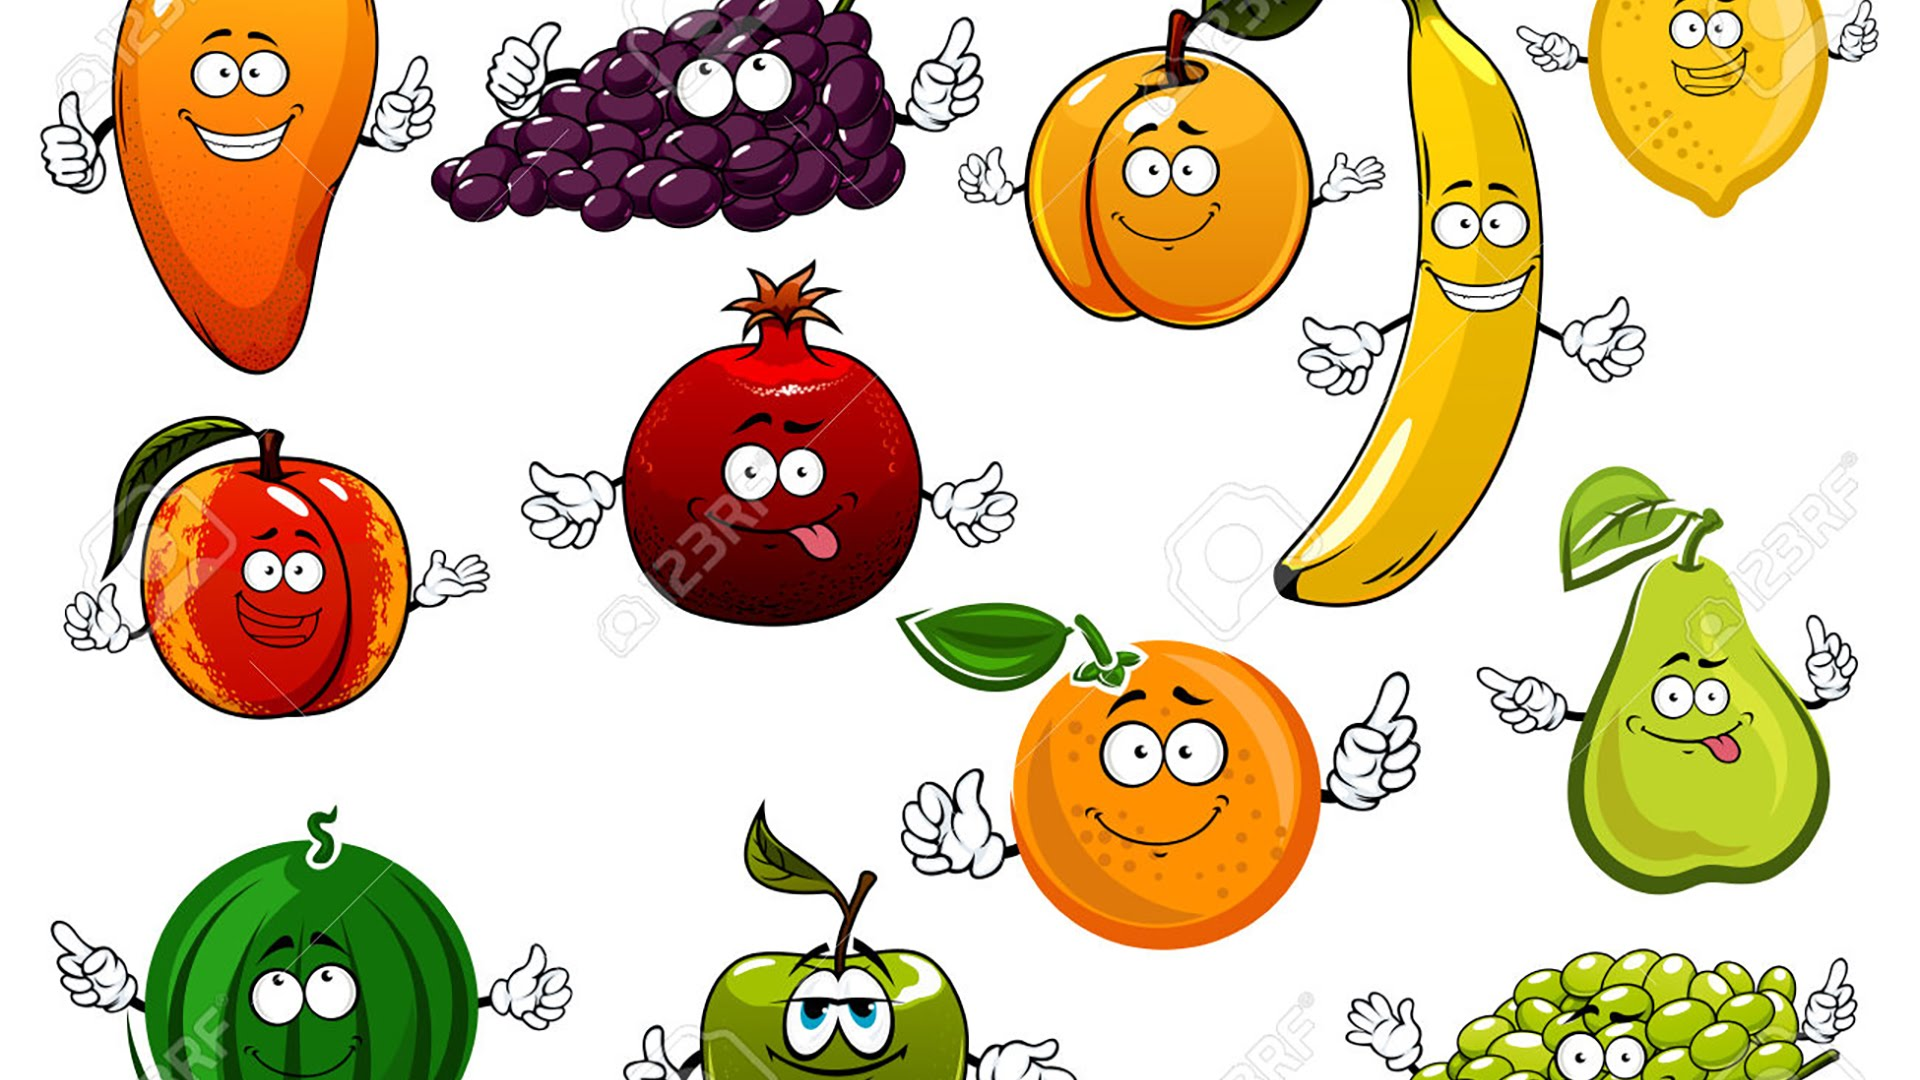 Breakfast clipart child nutrition Healthy for for for Eating